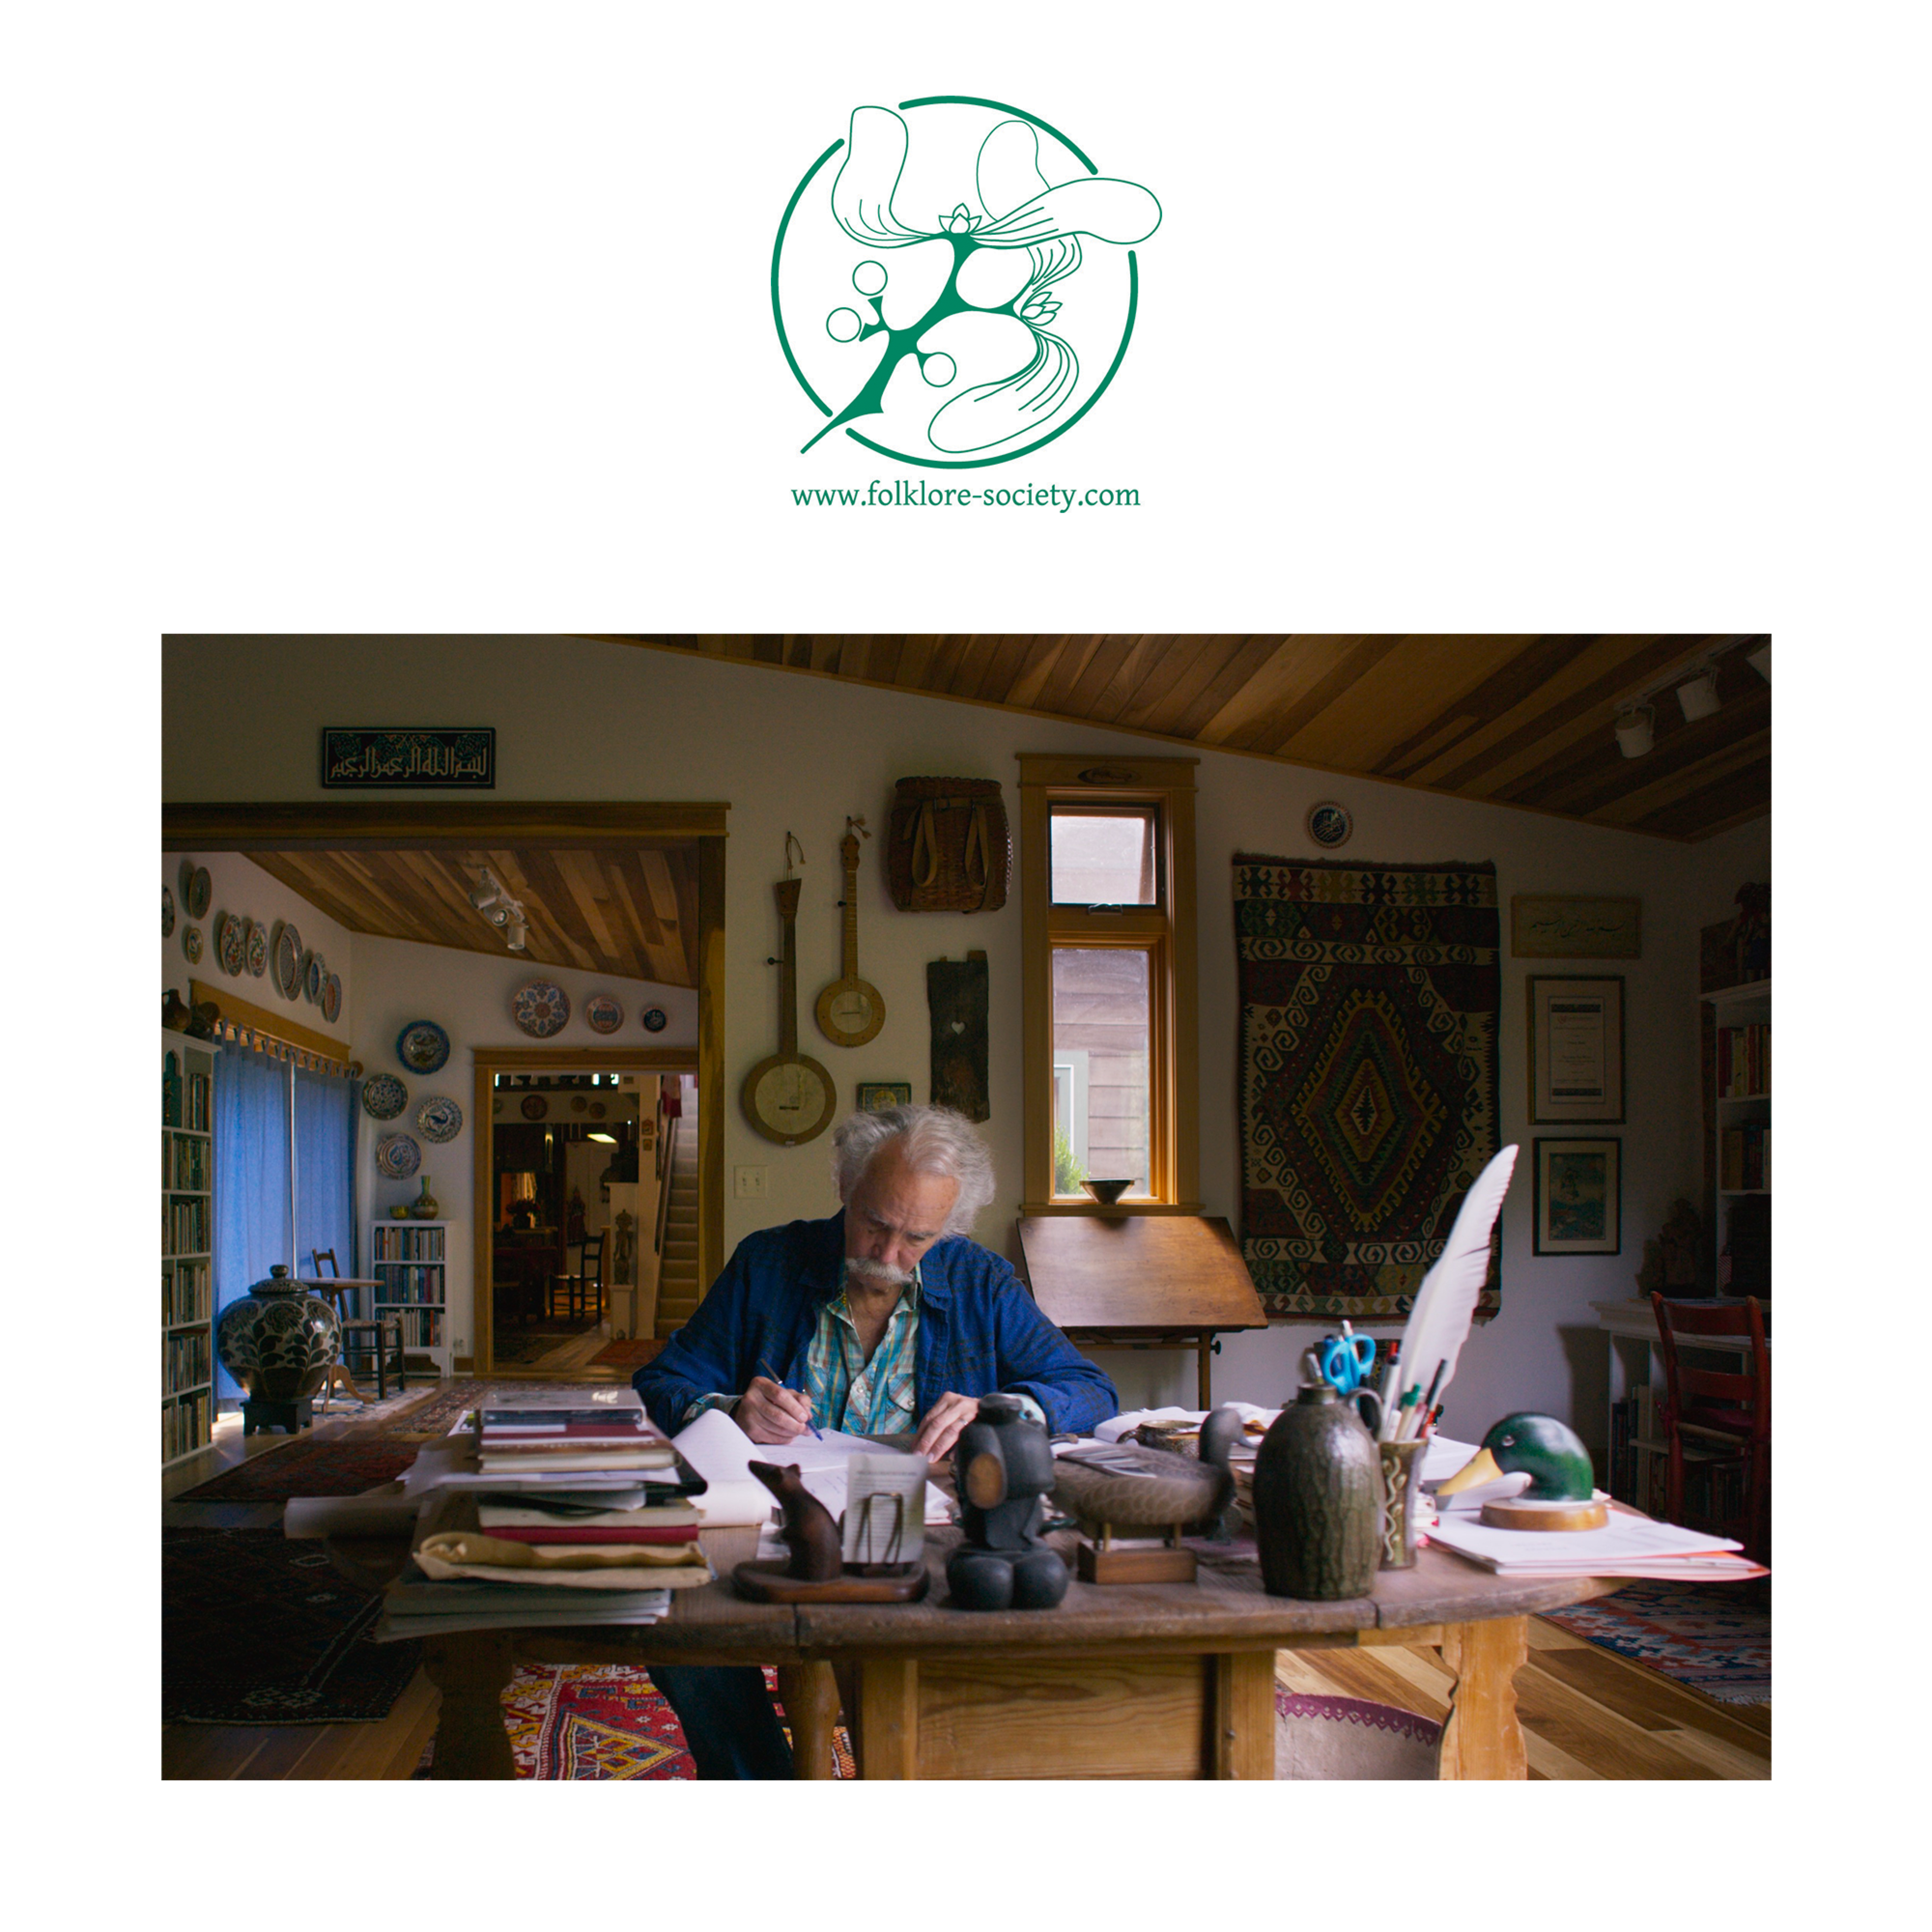 Henry Glassie: Field Work at Folklore Society